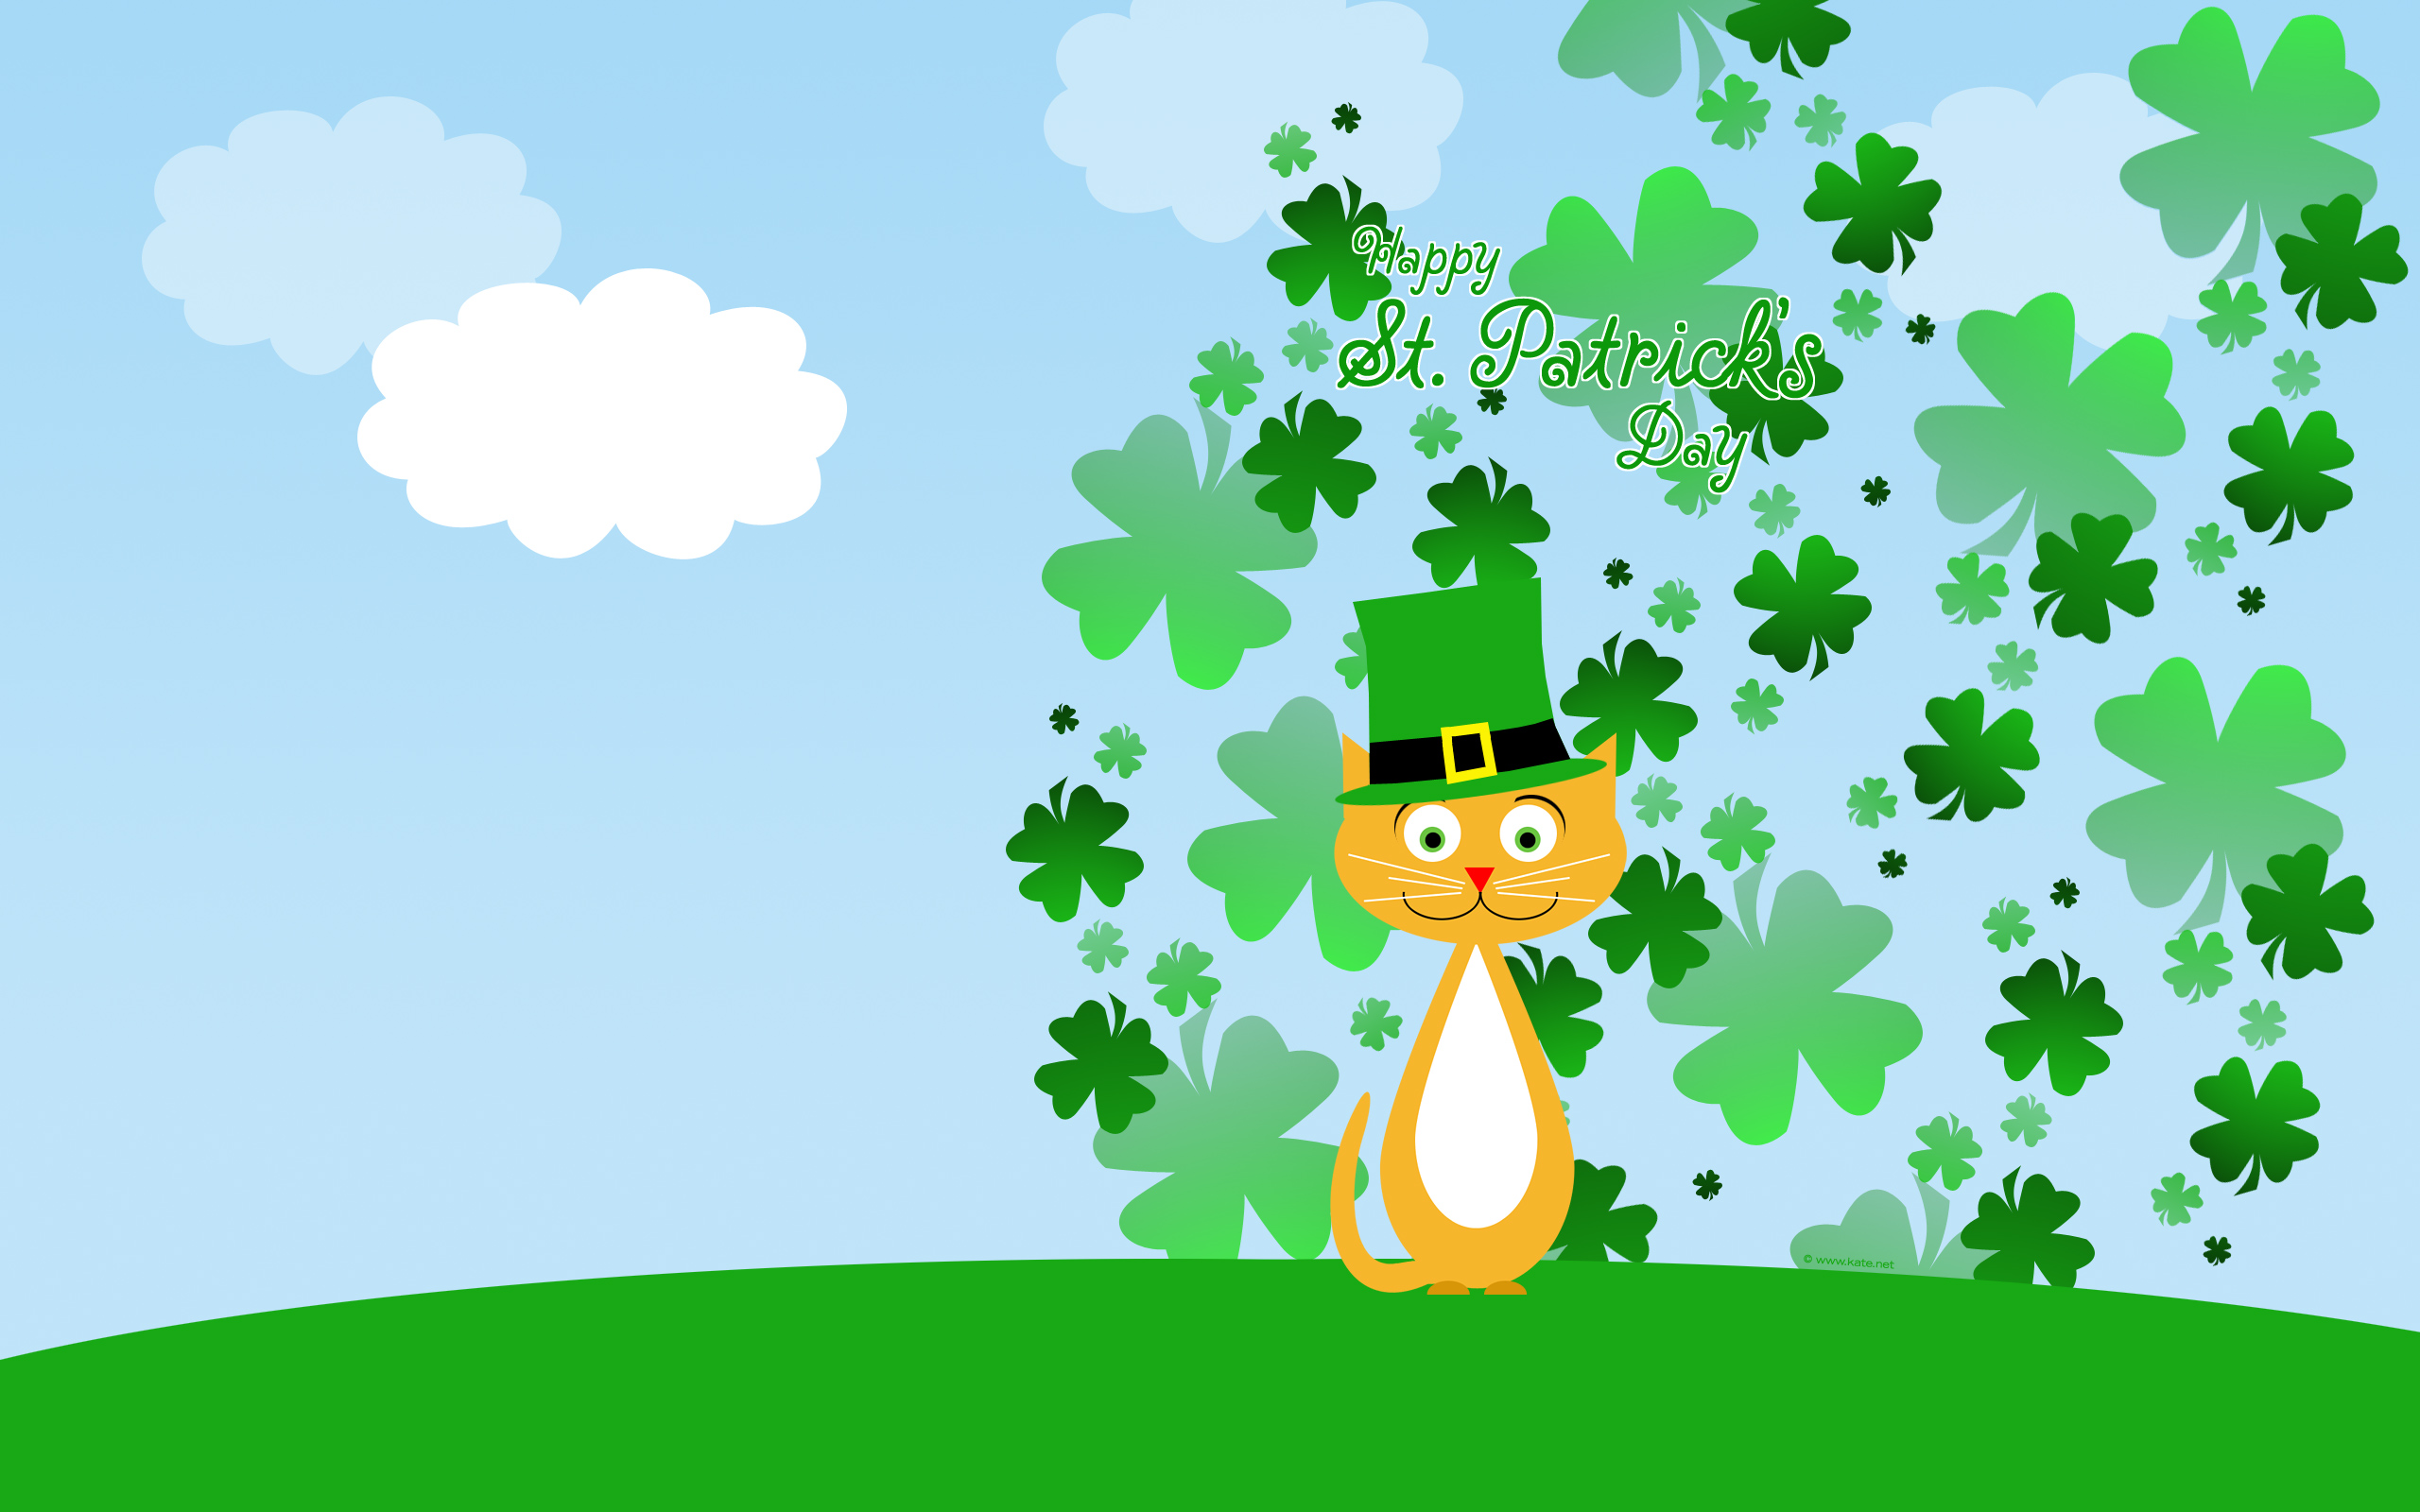 St Patricks Day Wallpapers by Katenet 2560x1600